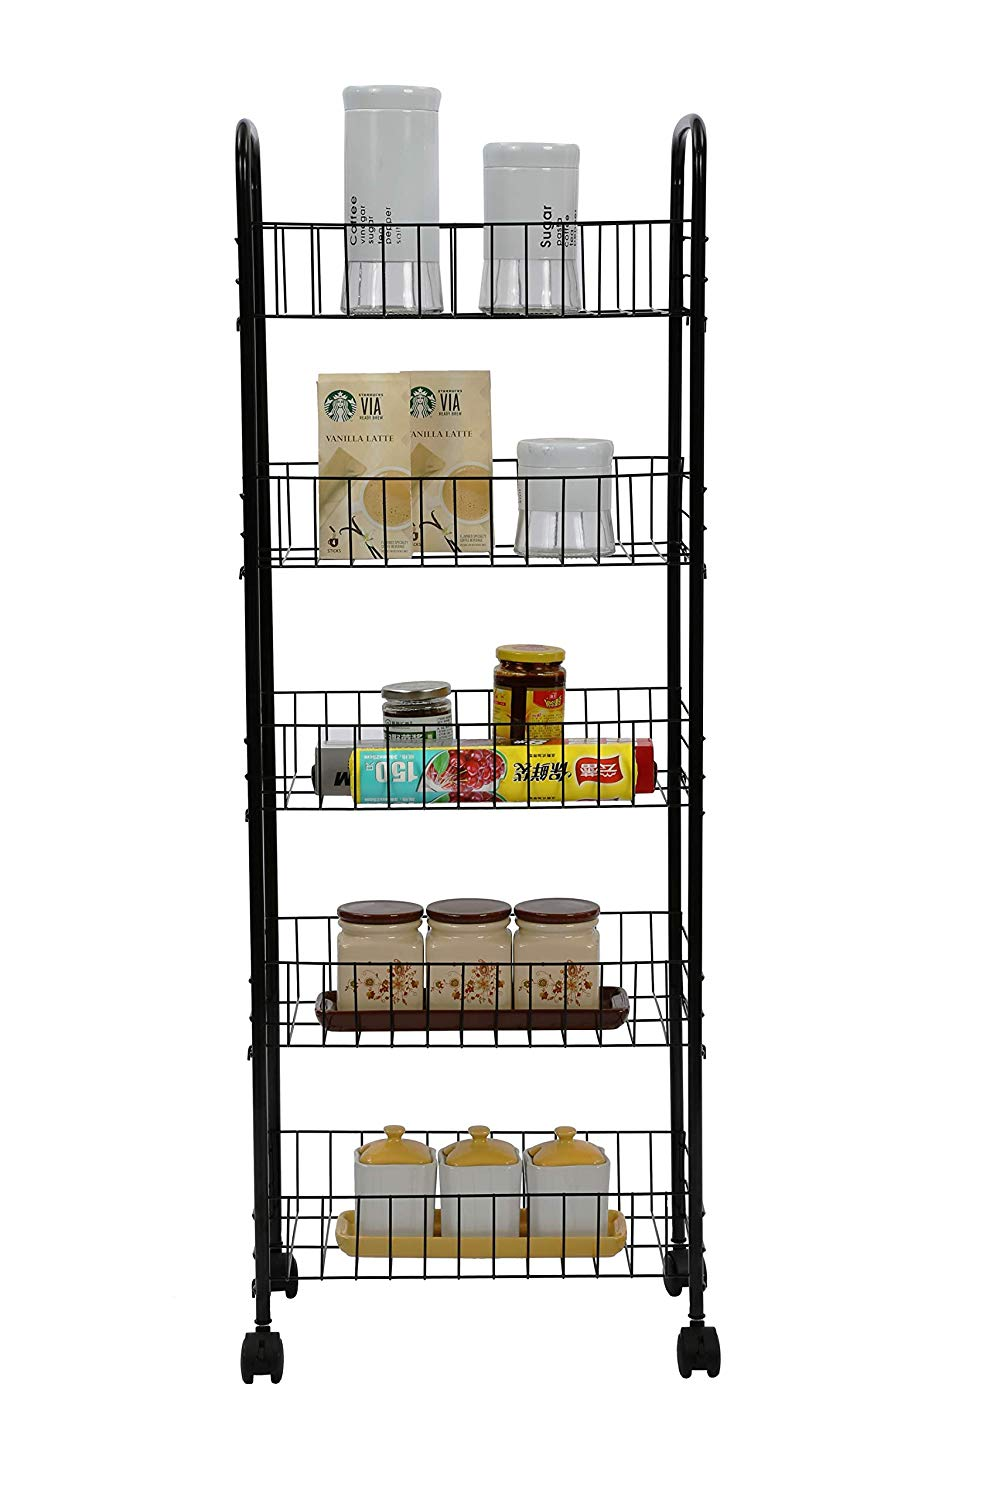 """Homebi 5-Tier Kitchen Trolley Rolling Cart Wire Shelving Units Metal Storage Rack Kitchen Stand with Wire Baskets for Cooking Utensils and Food Storage with Wheels in Black,16.53""""W x 10.31"""" D x44.49""""H"""